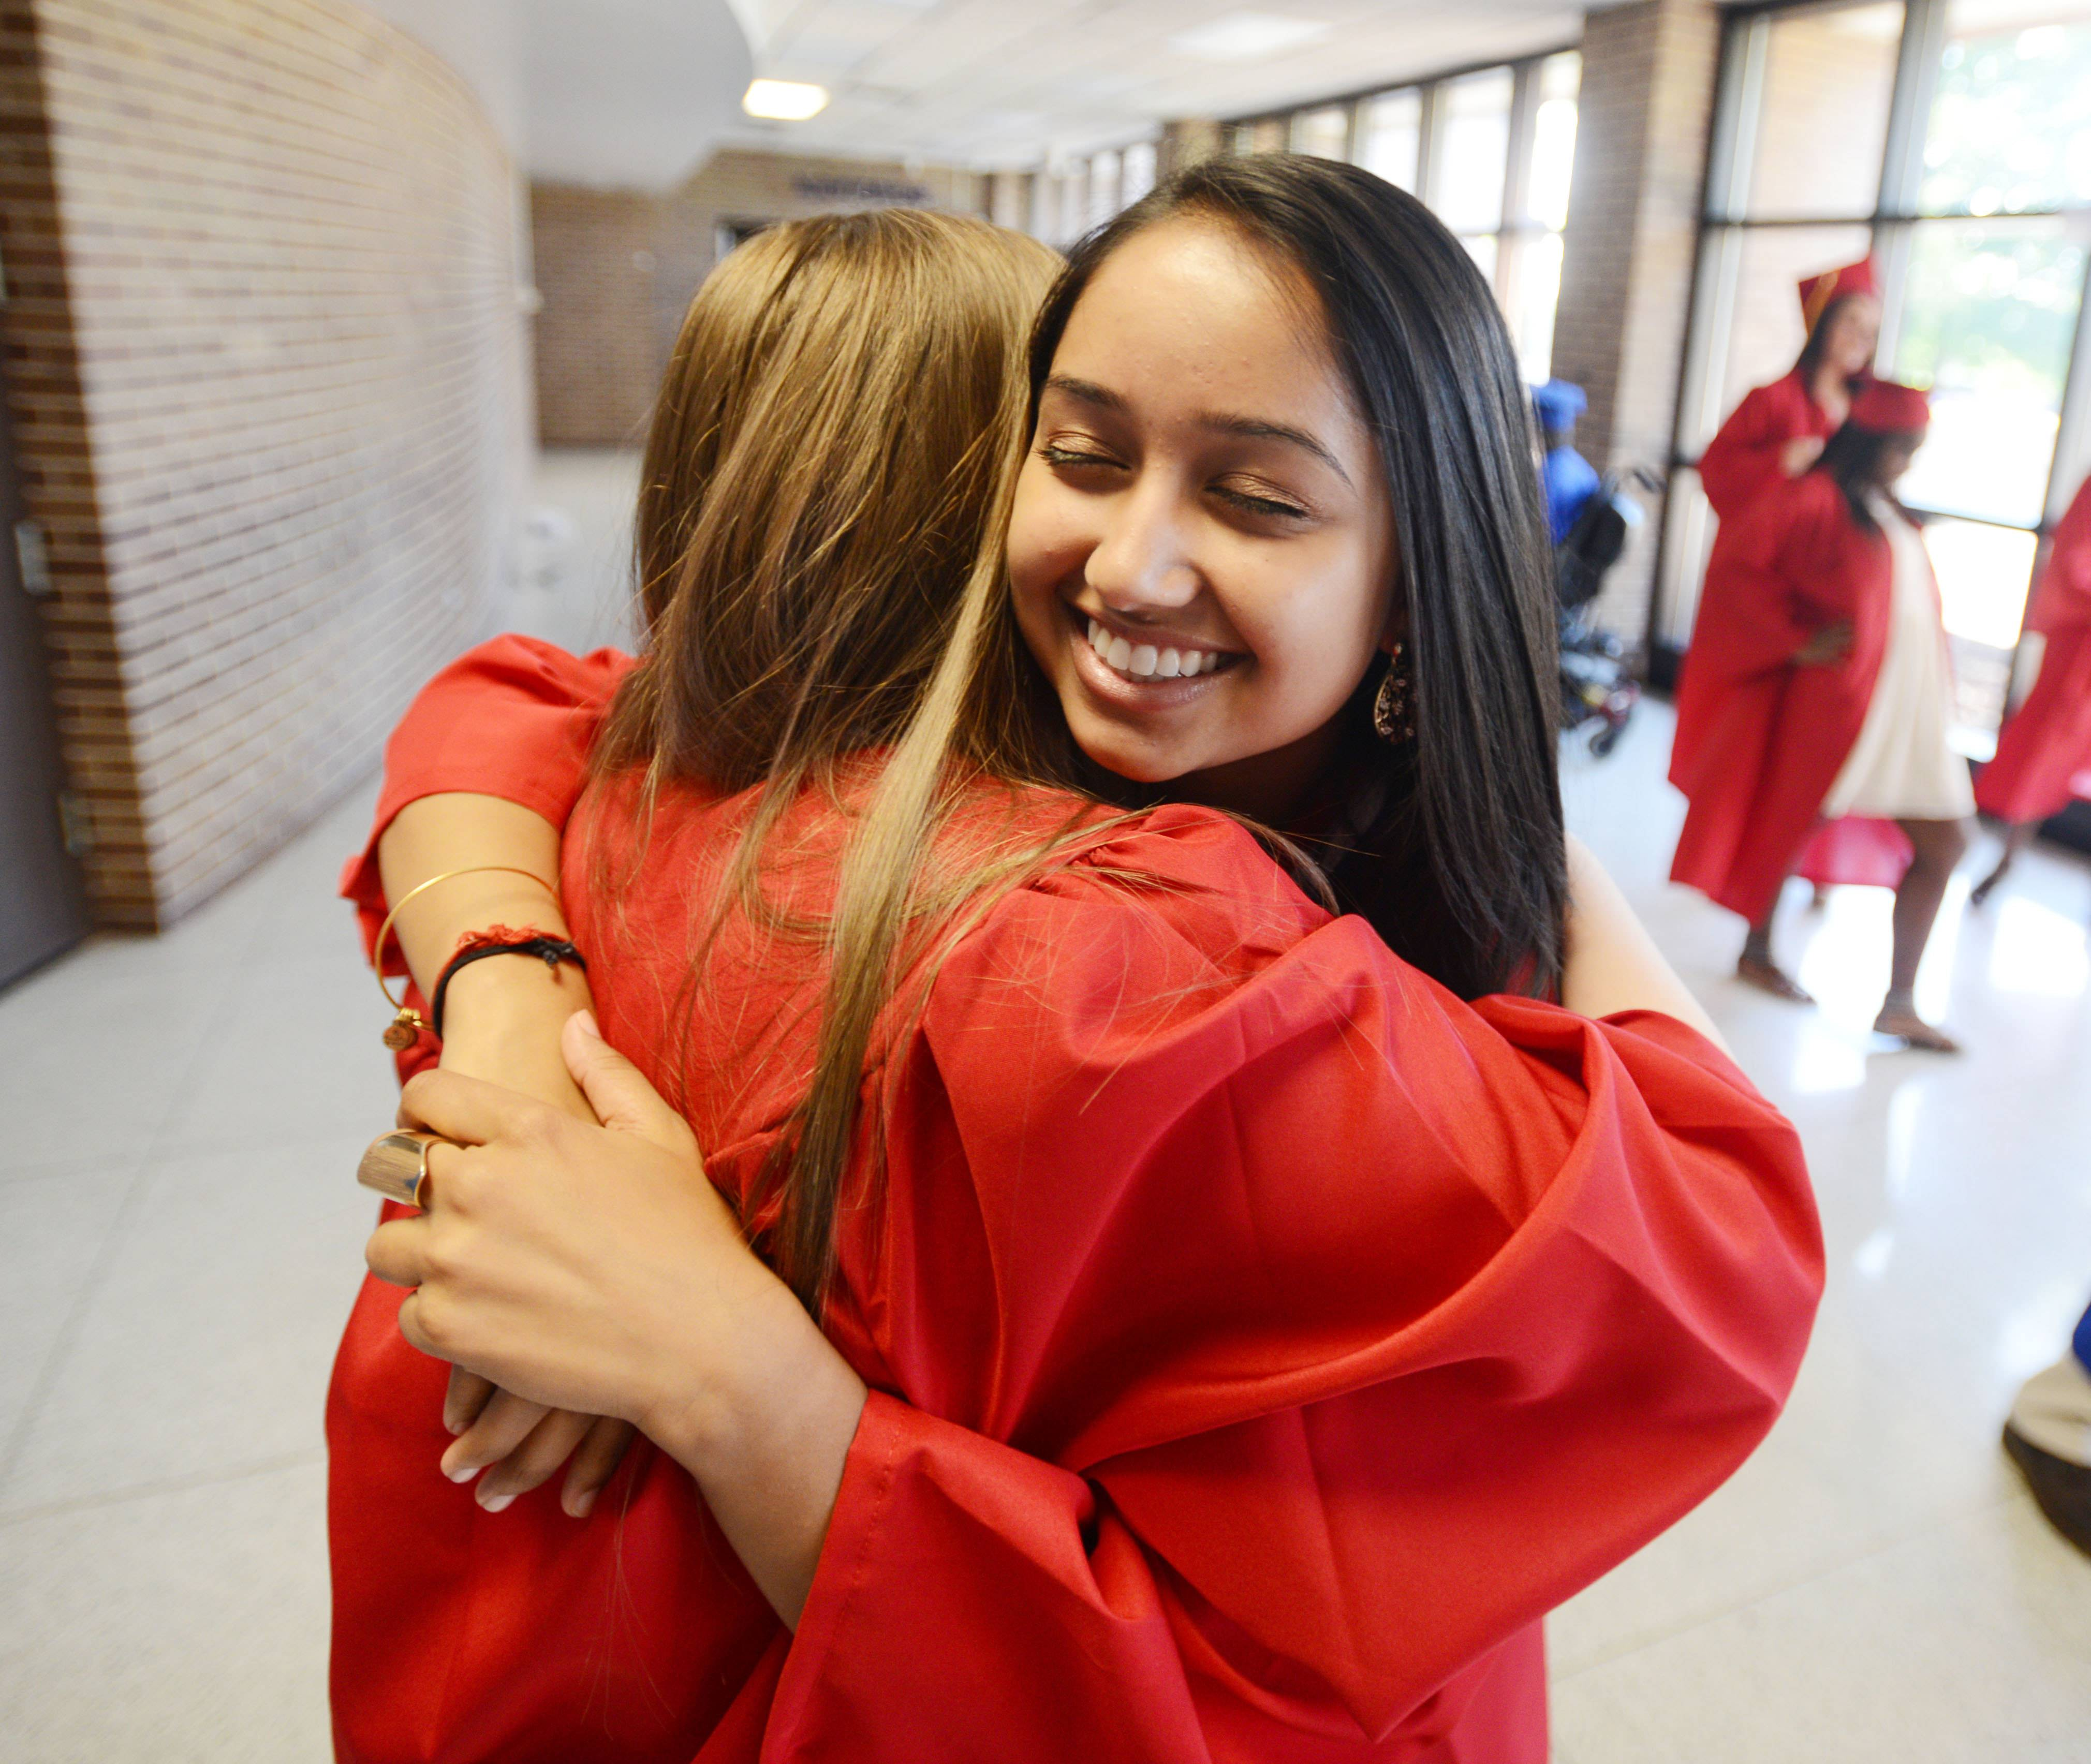 Jennifer Lipa,17, of Glen Ellyn hugs Nisha Choksi,18, of Wheaton during the Glenbard South High School Graduation Friday.